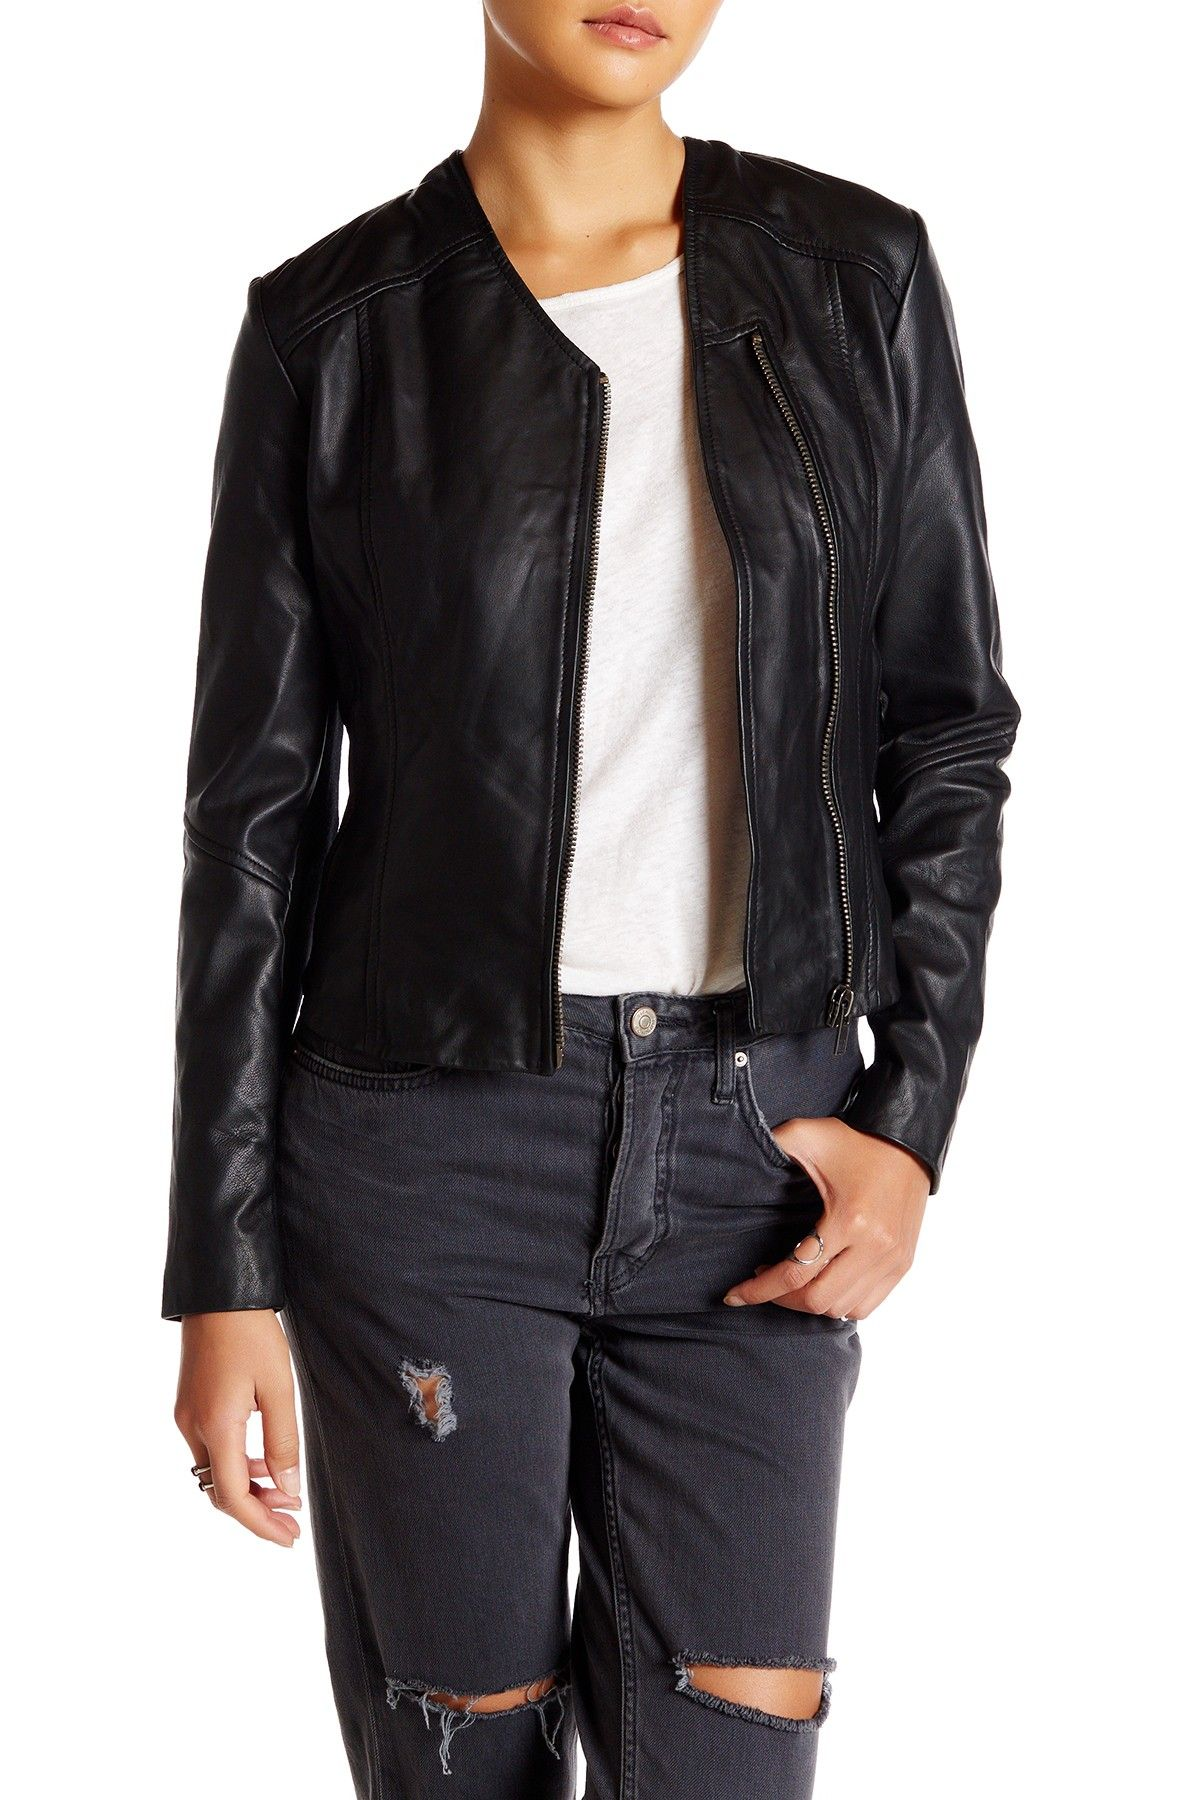 W118 by Walter Baker Kimberly Leather Jacket Fashion